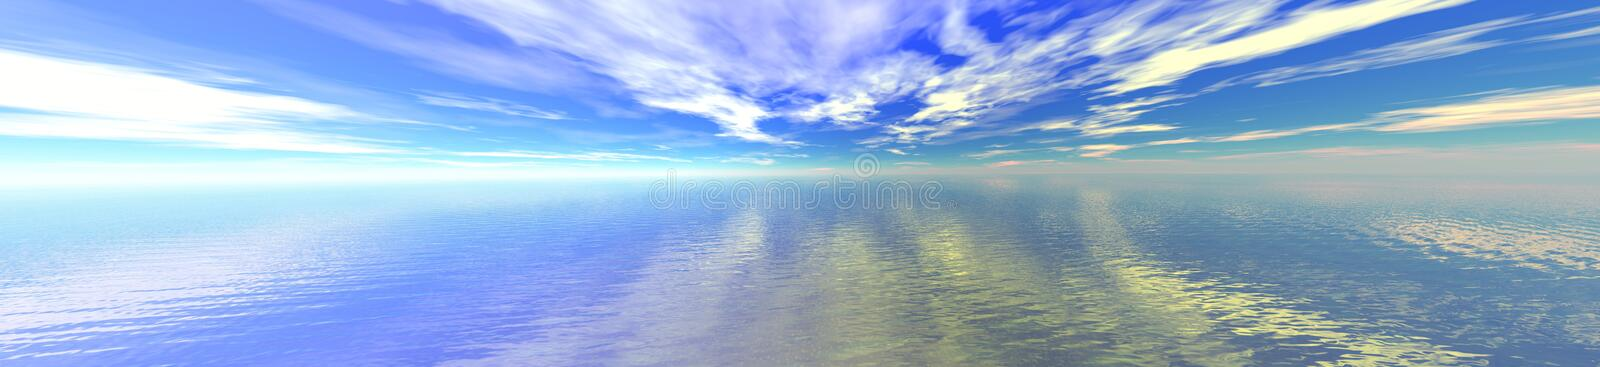 Sky and water horizon royalty free illustration